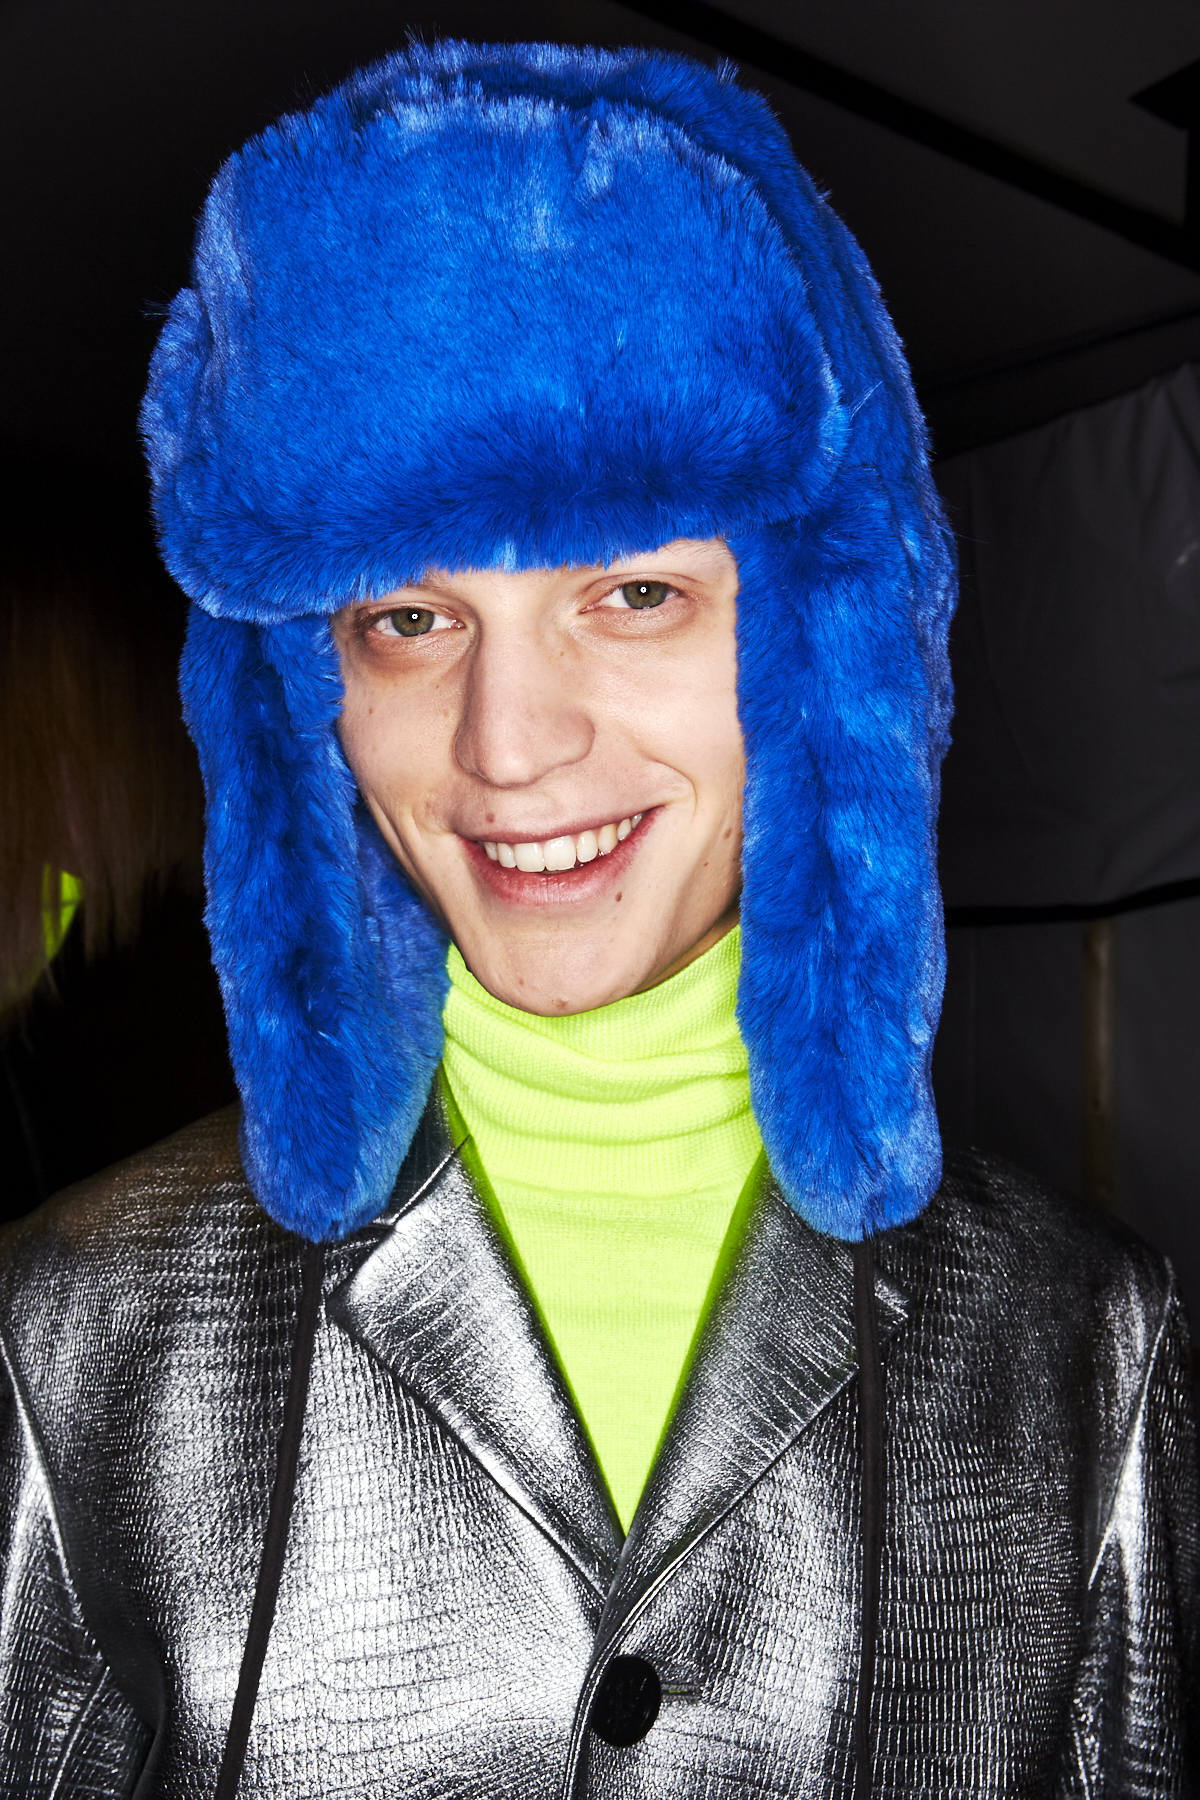 Paul Smith AW19 Men & Woman Fashion Show Paris Backstage